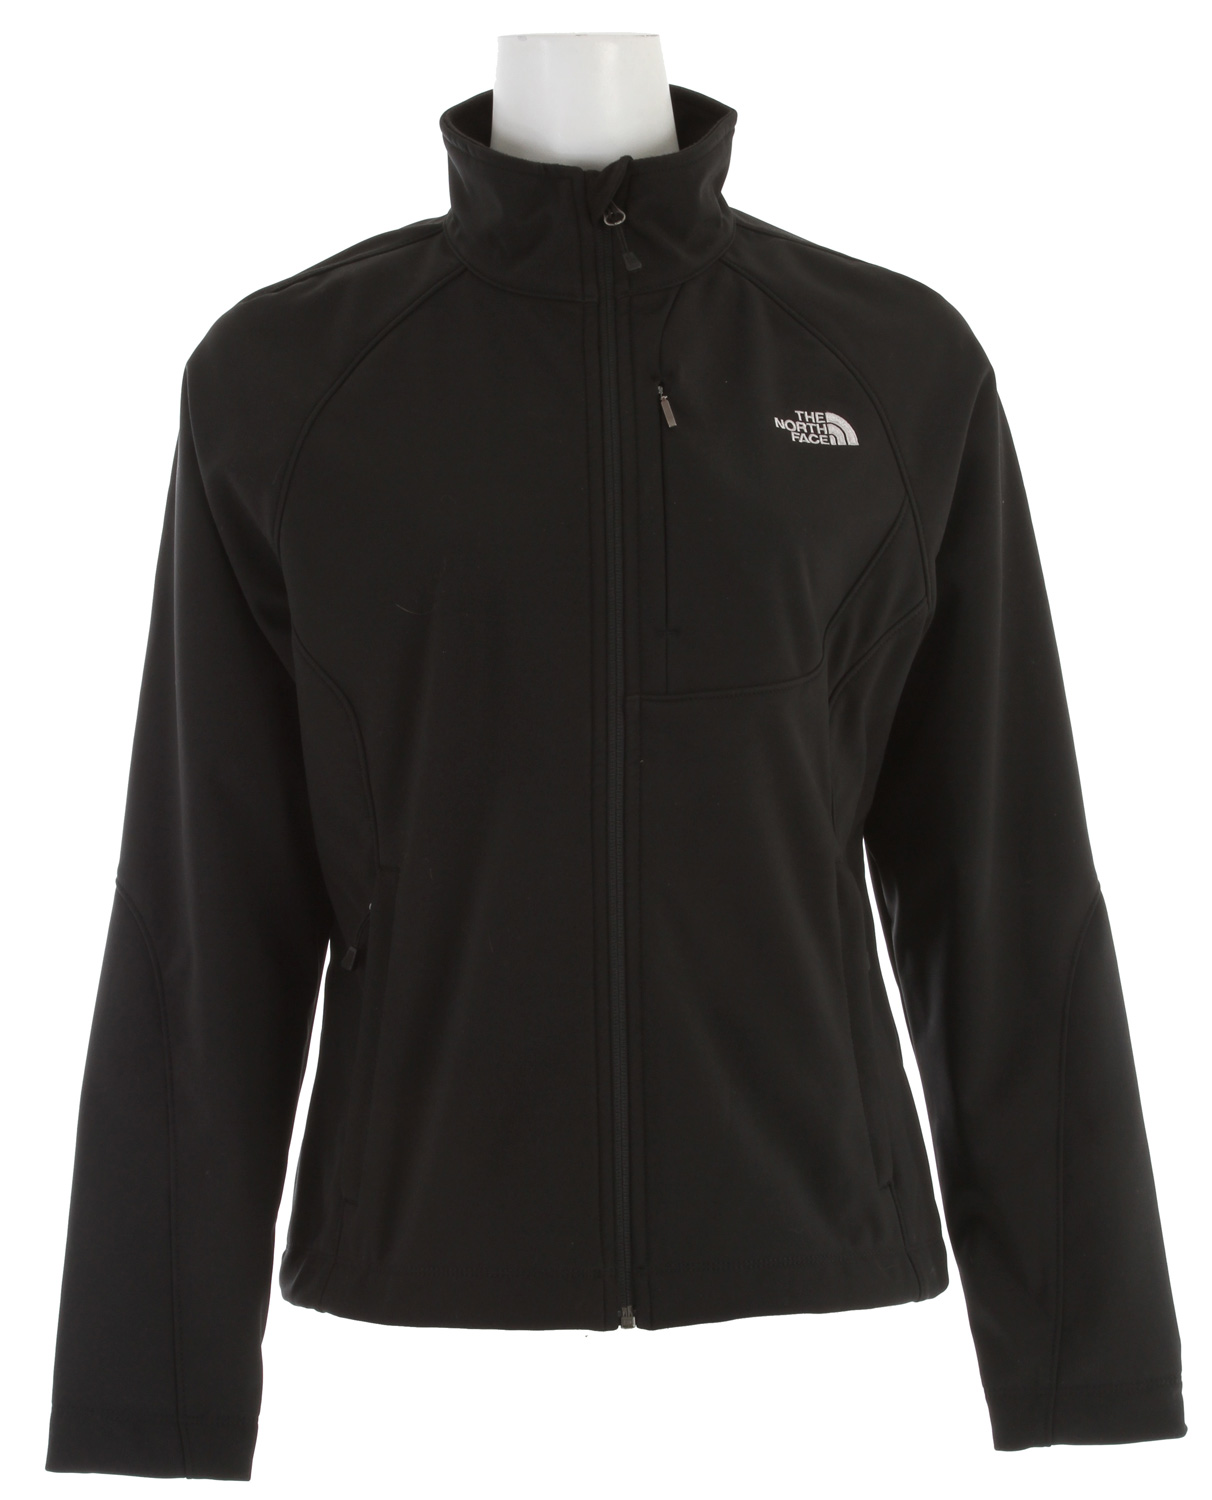 Versatile and widely worn soft shell has enhanced windproof features and a stretchy, comfortable fit; ideal for multiple activities.Key Features of The North Face Apex Bionic Jacket: Standard fit TNF Apex ClimateBlock fabric wind permeability rated at 0 CFM Fleece backer Napoleon chest pocket Two hand pockets Internal stretch comfort cuffs - $148.95